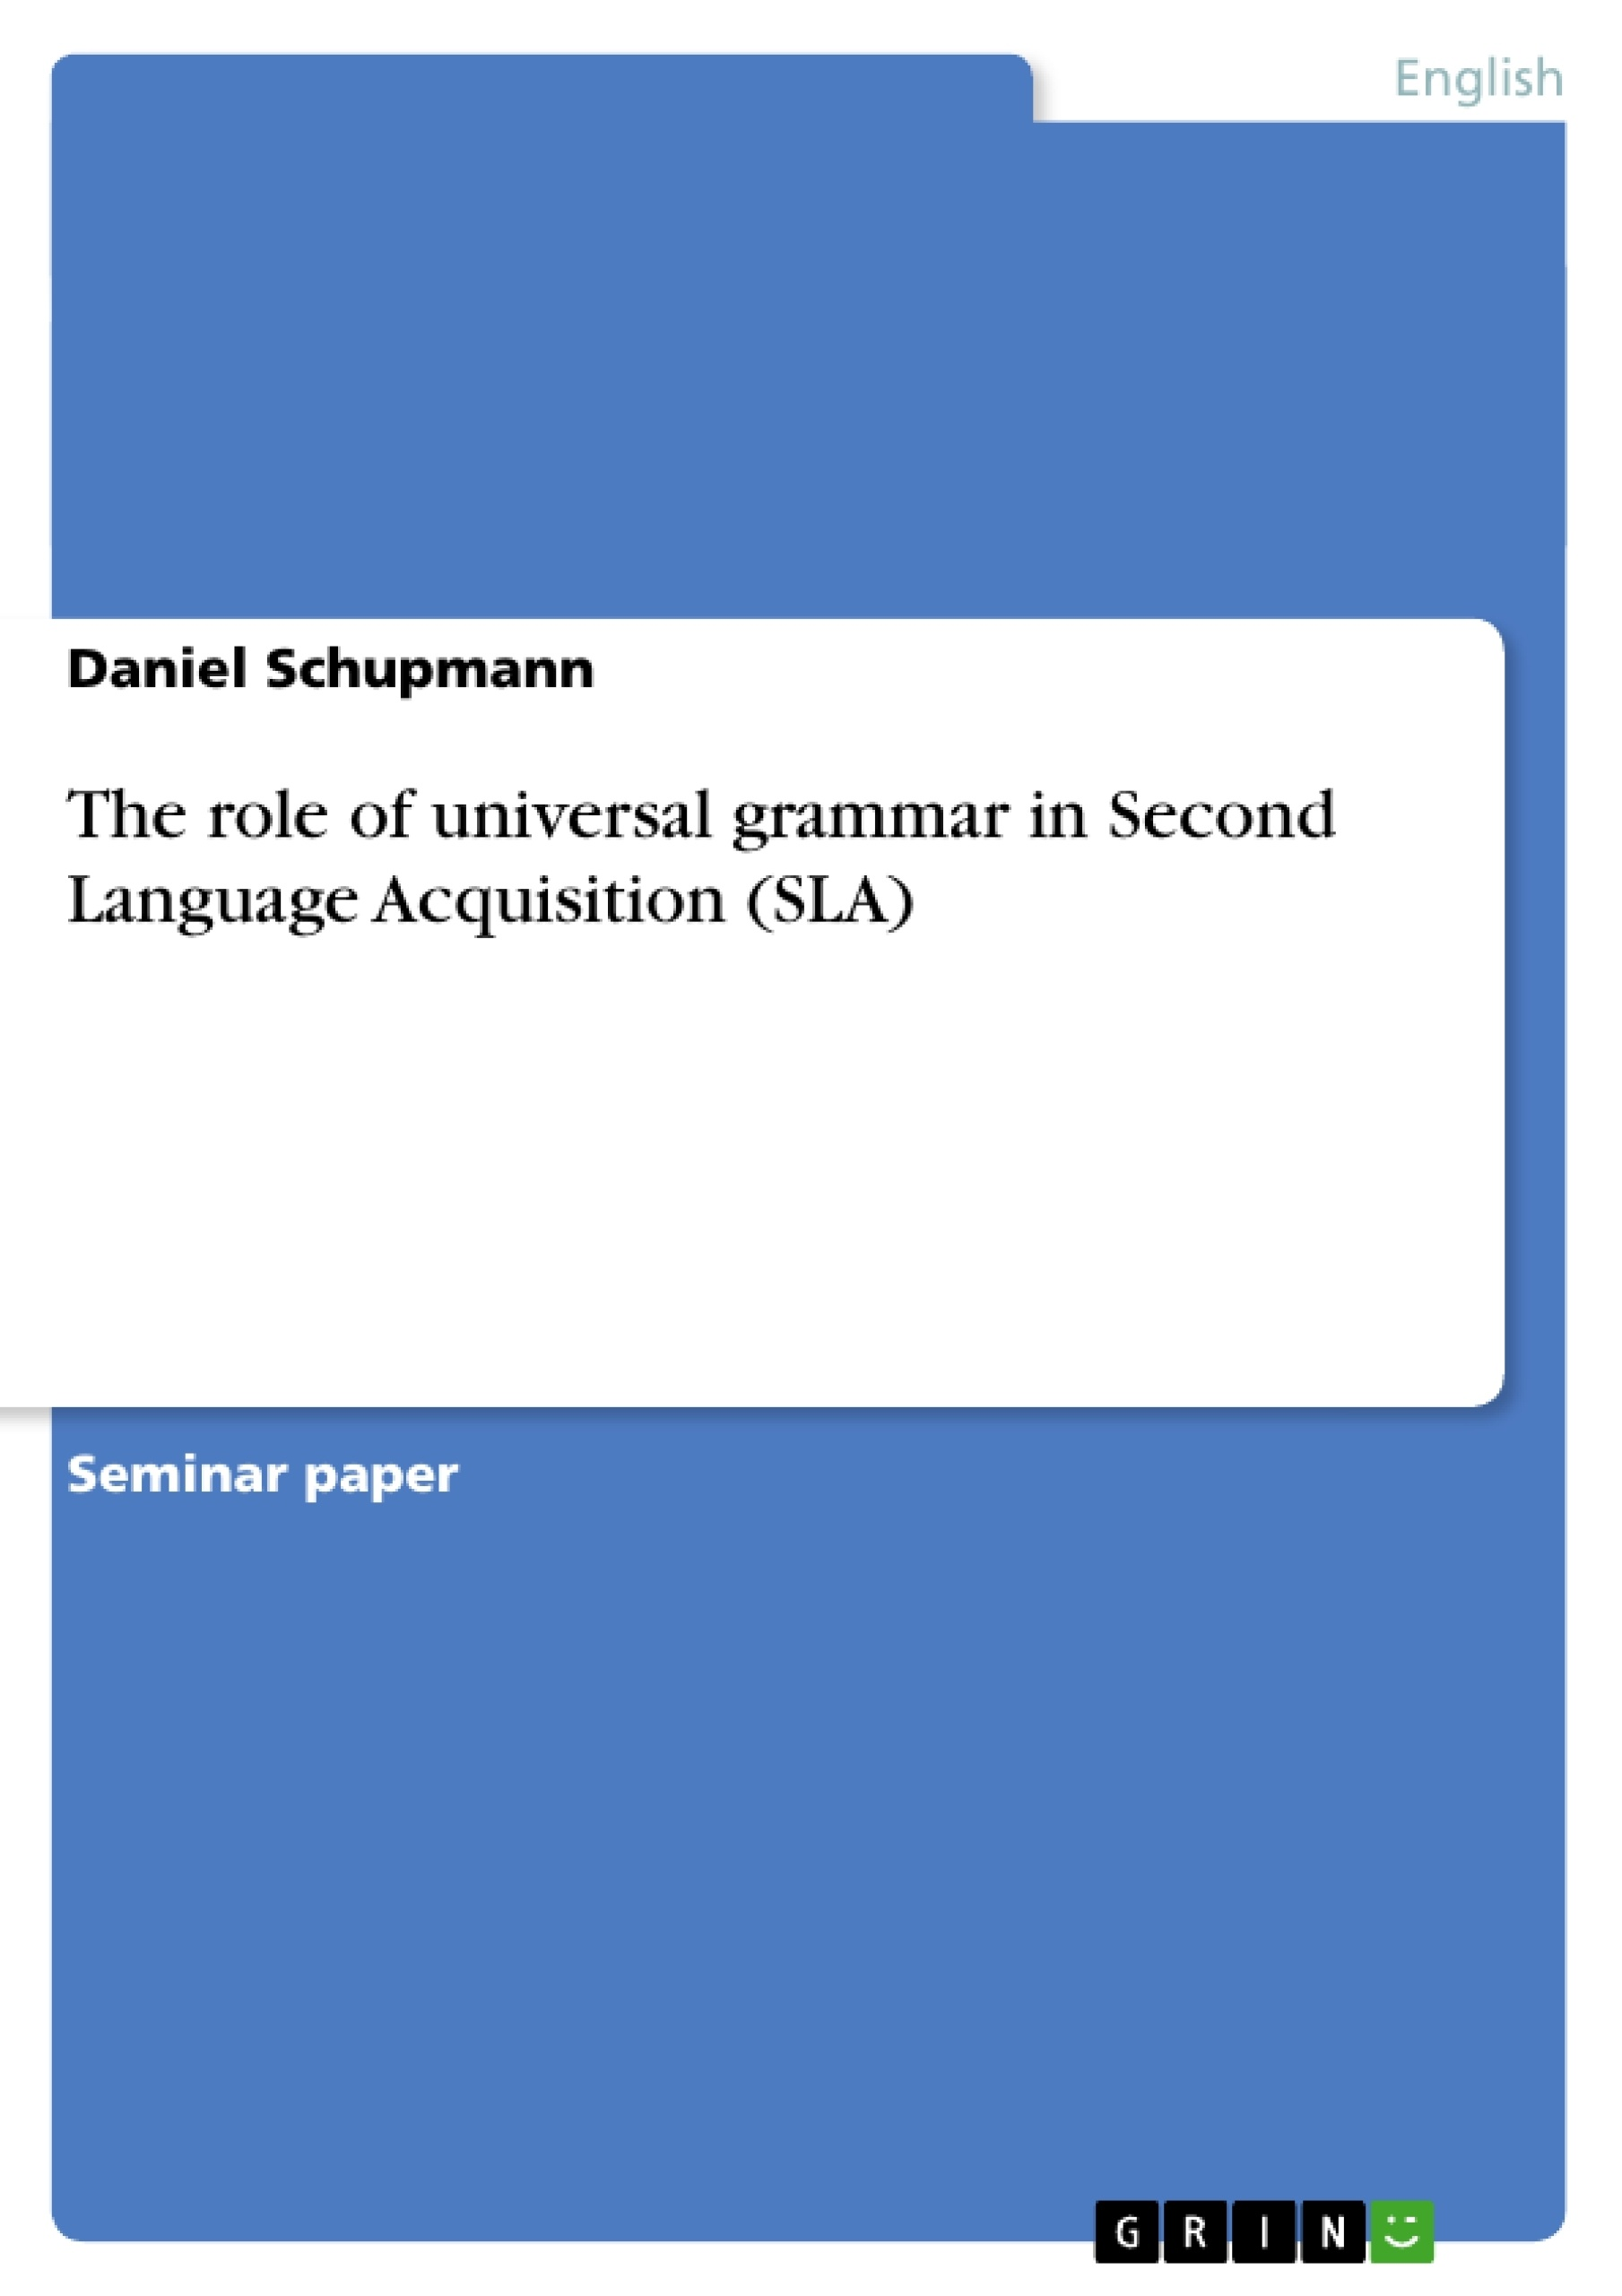 Title: The role of universal grammar in Second Language Acquisition (SLA)